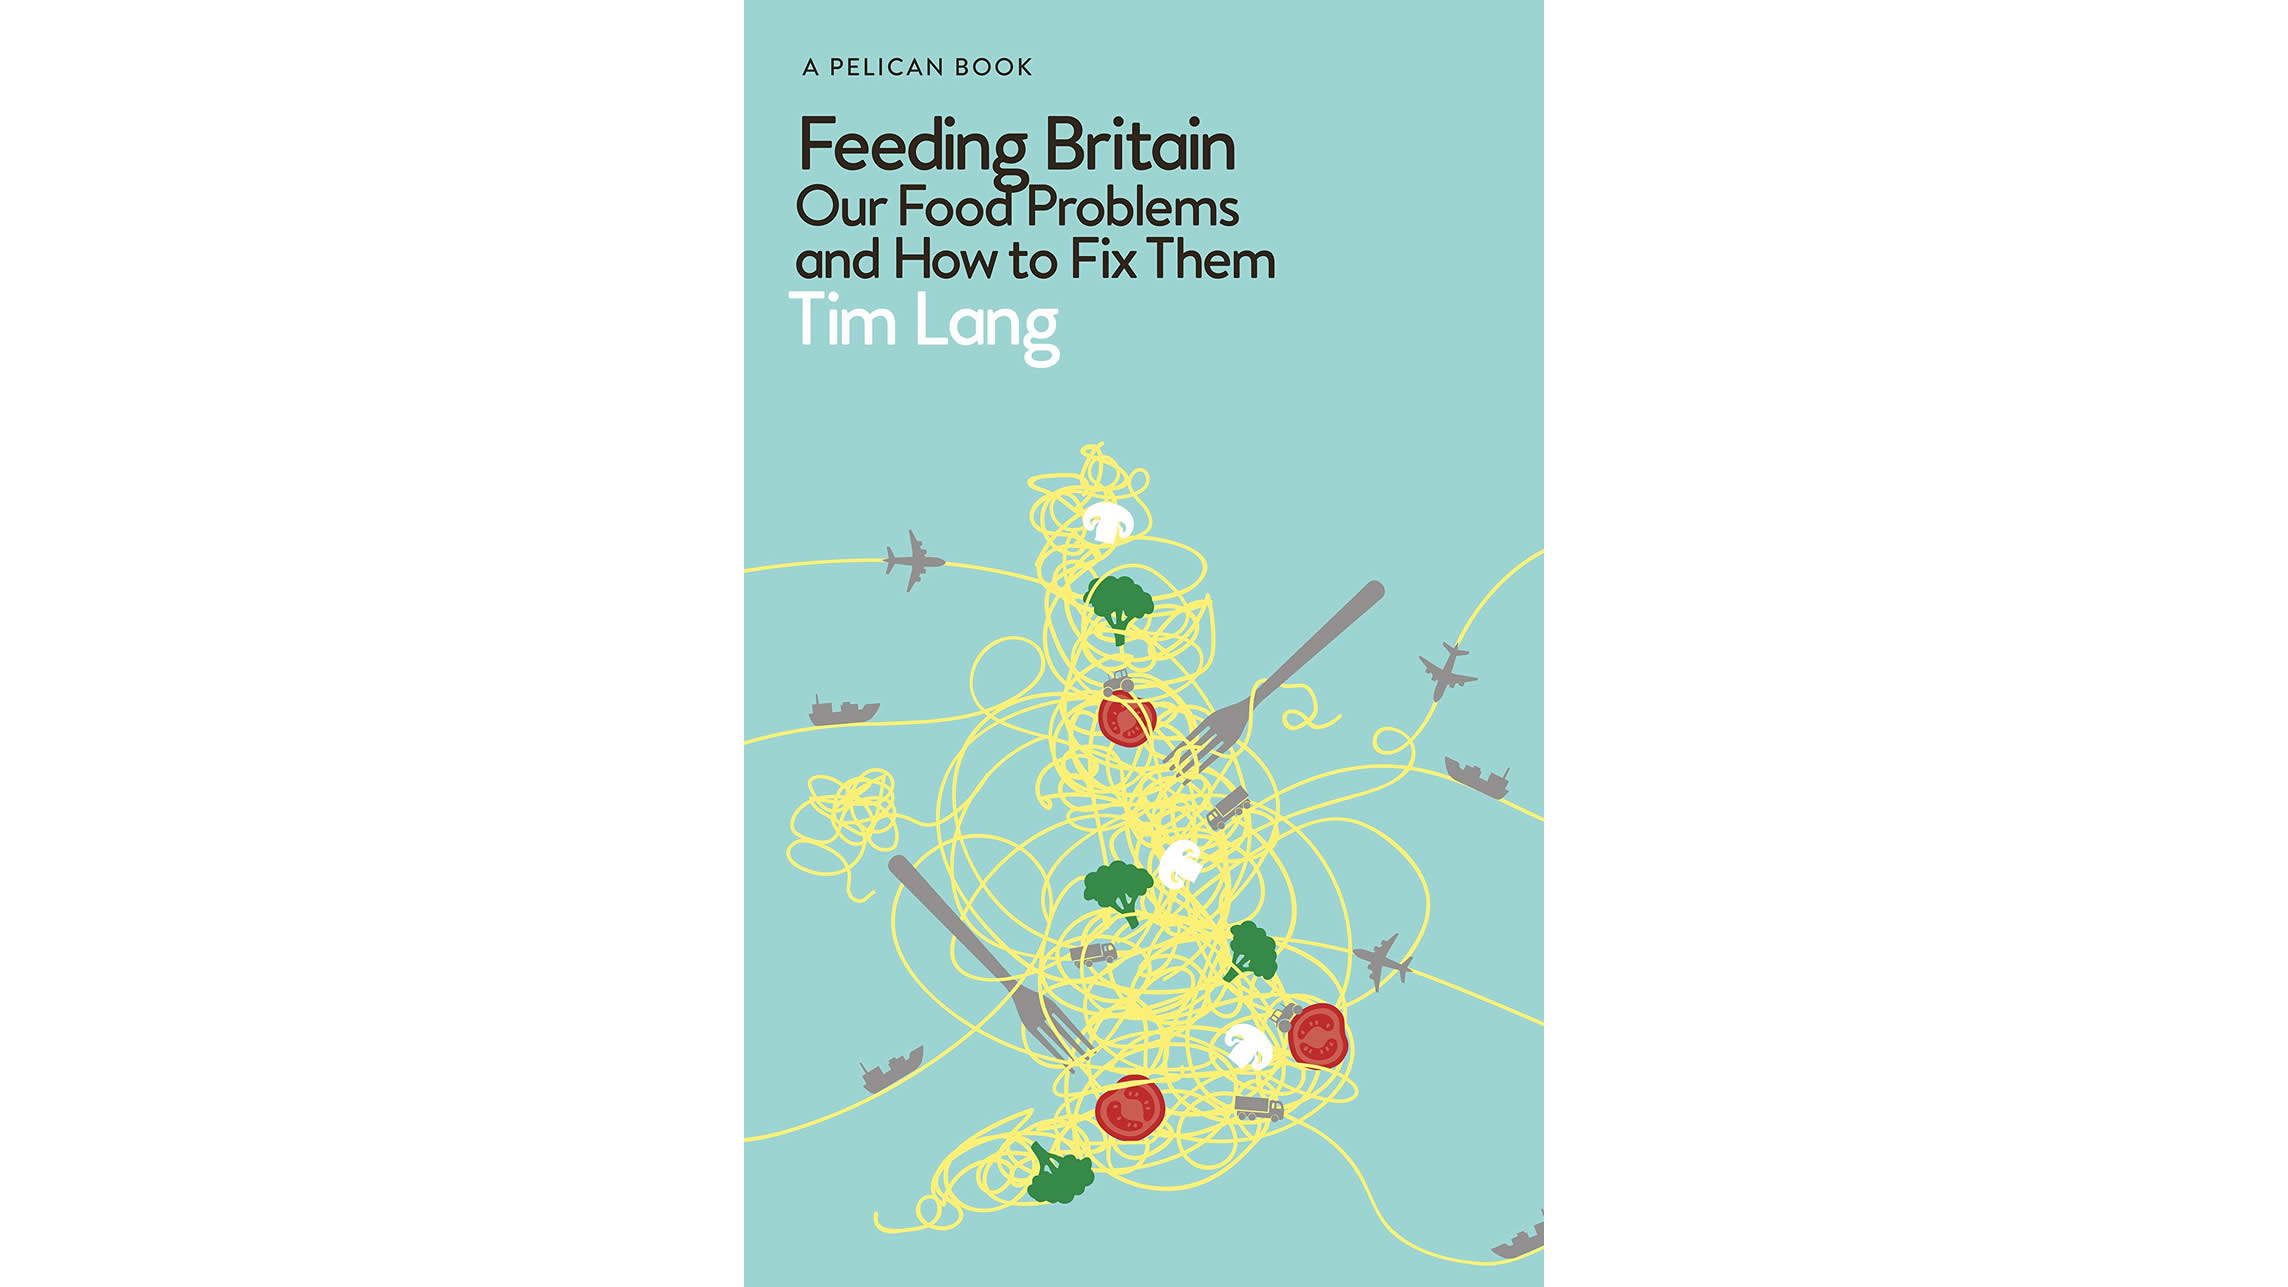 Feeding Britain: Our Food Problems And How To Fix Them